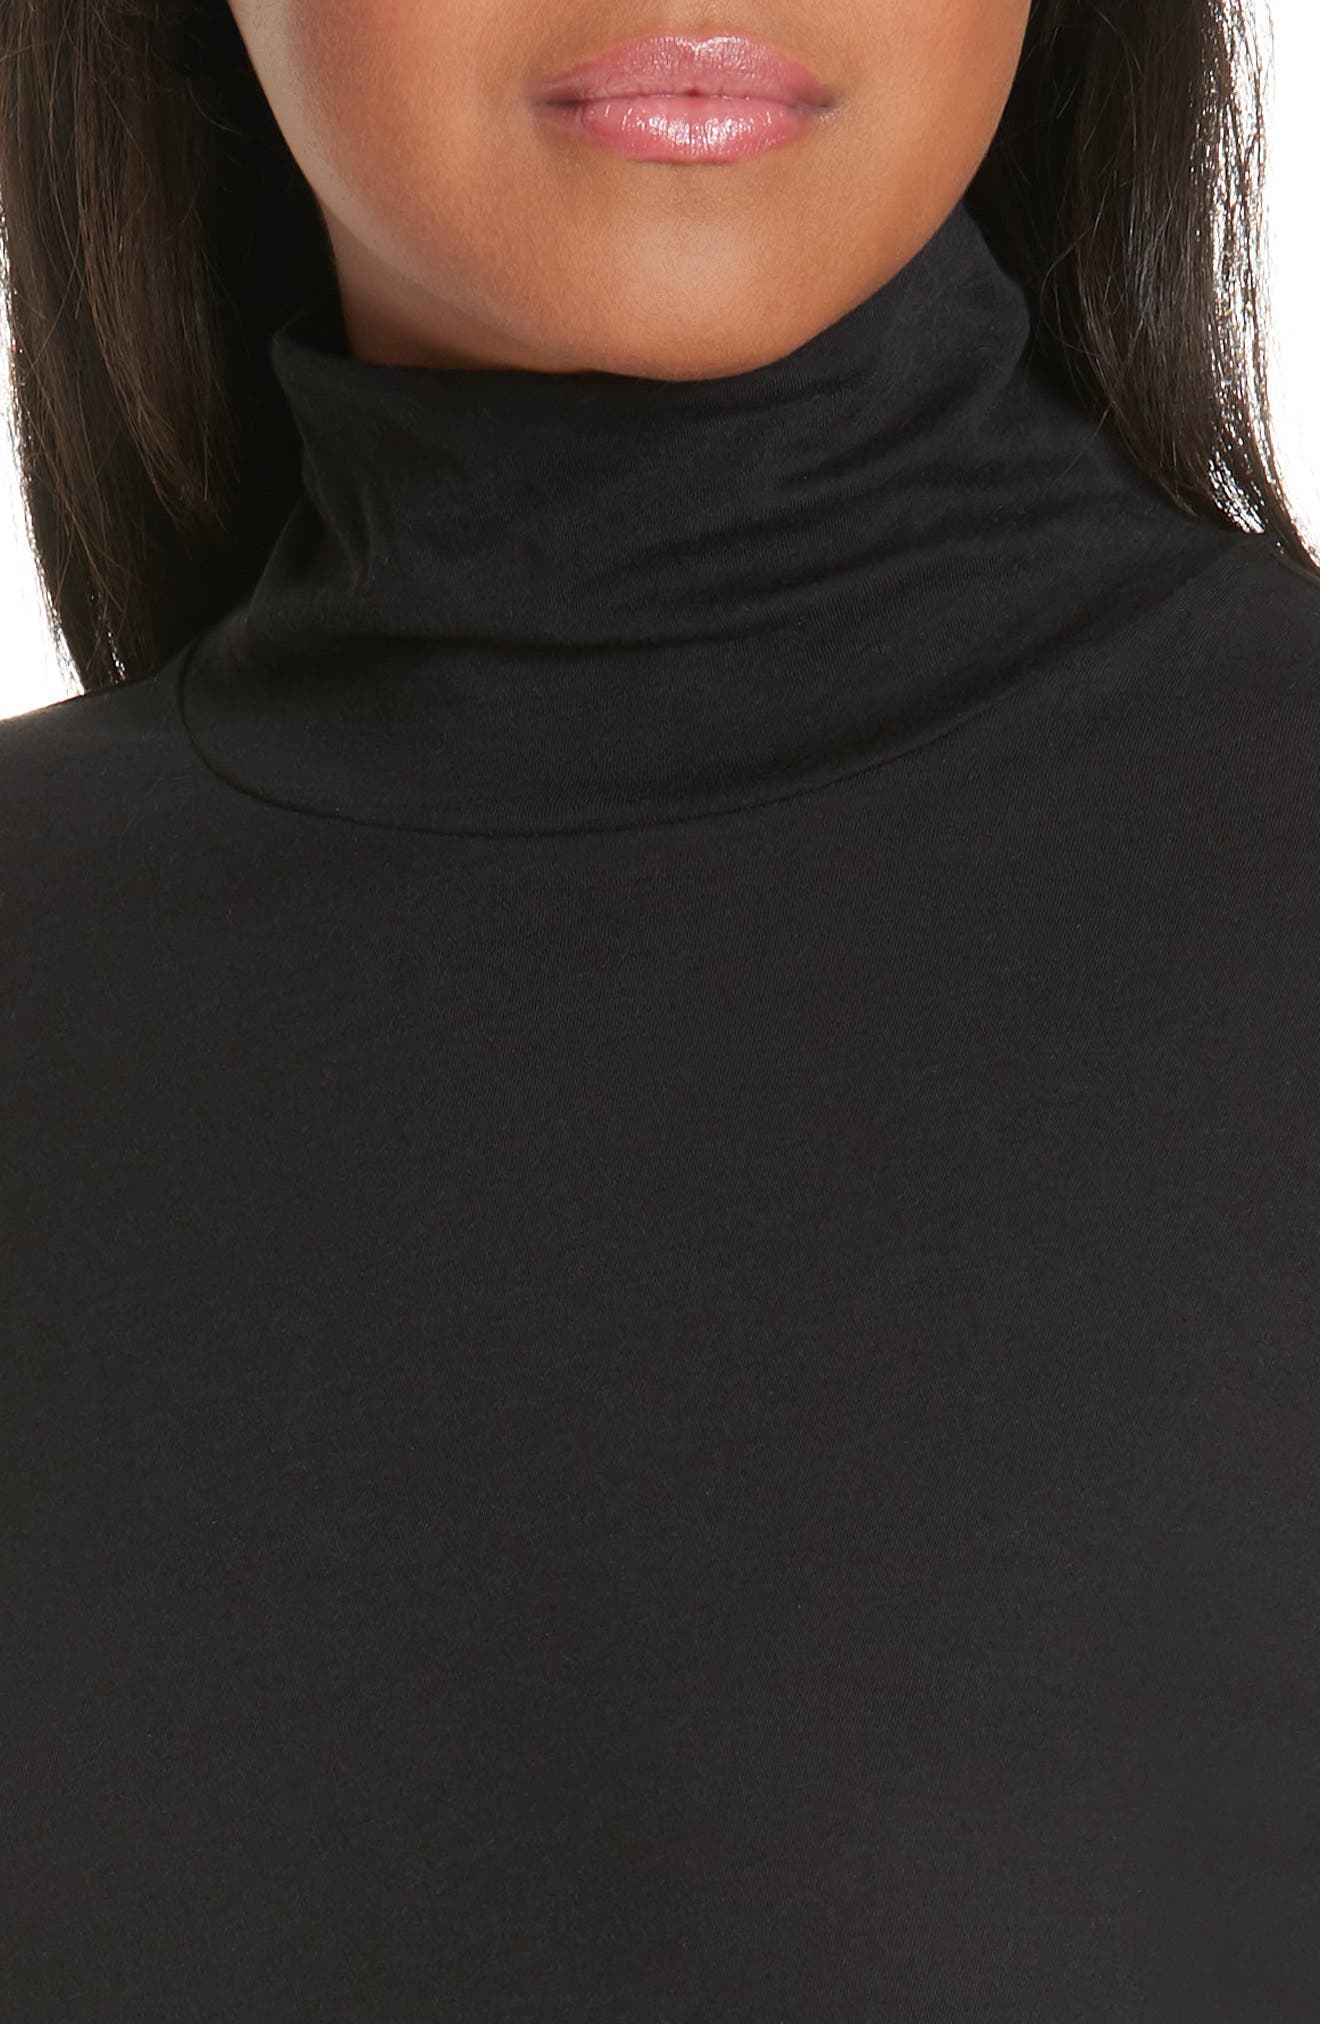 Pima Cotton Turtleneck,                             Alternate thumbnail 4, color,                             001